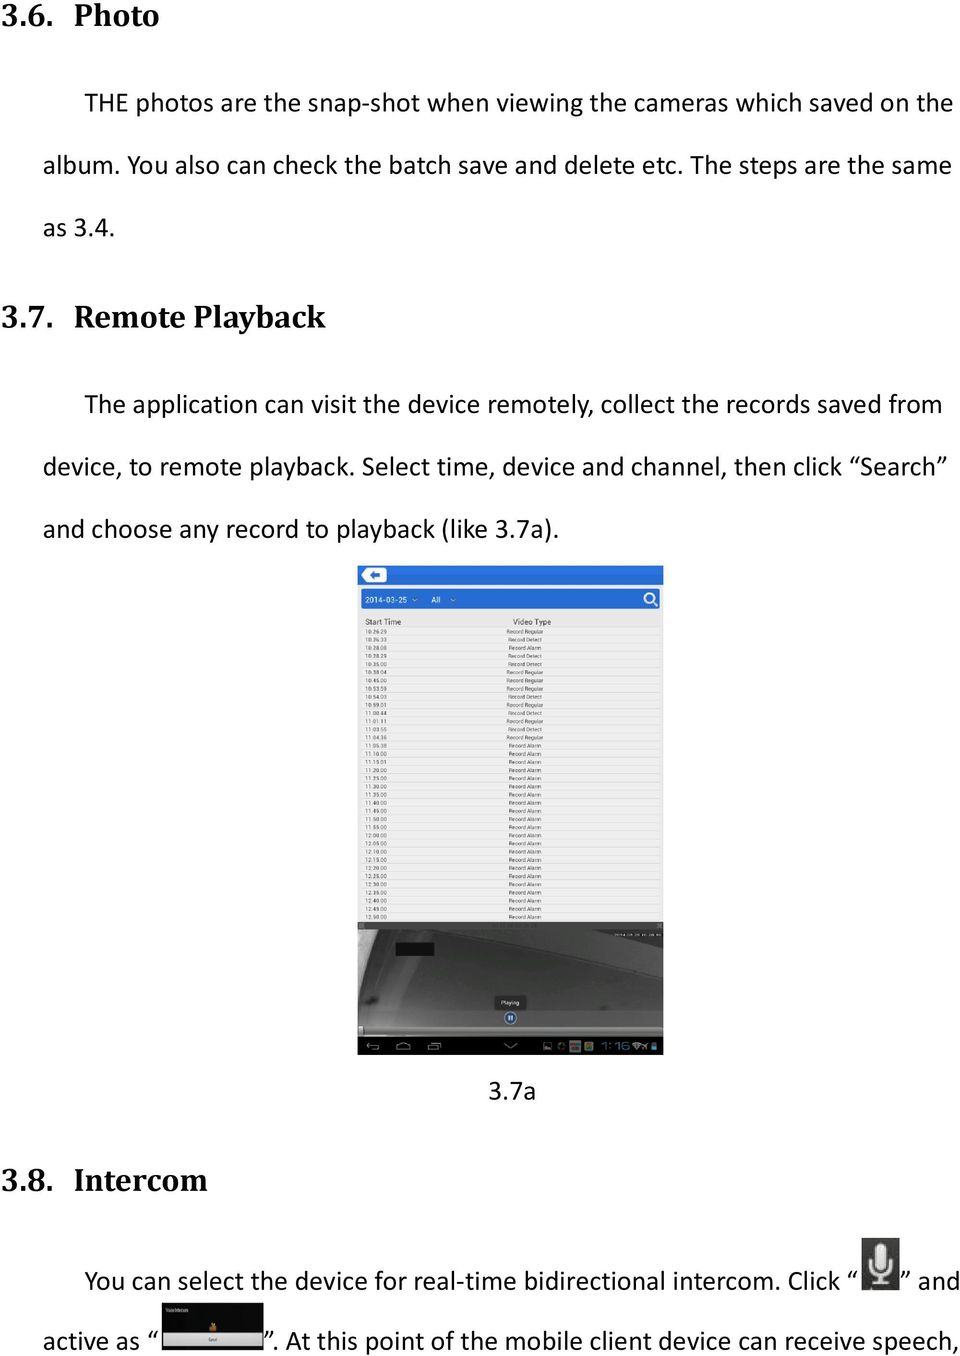 Remote Playback The application can visit the device remotely, collect the records saved from device, to remote playback.